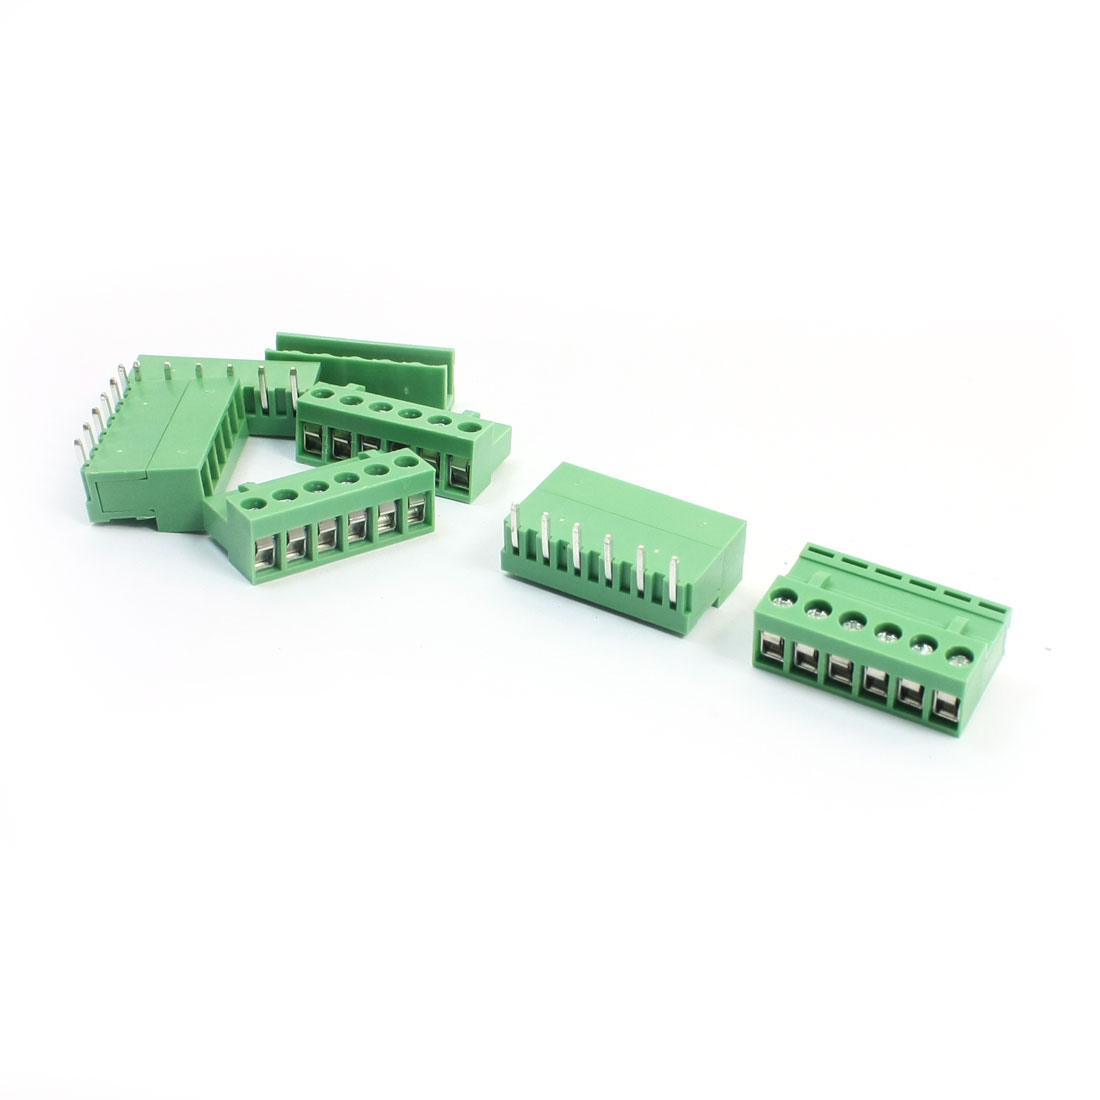 5 Pcs AC300V 10A 5.08mm Pitch 6-Pin Pluggable Type Through Hole PCB Terminal Barrier Block Connector for 14-26AWG Wire